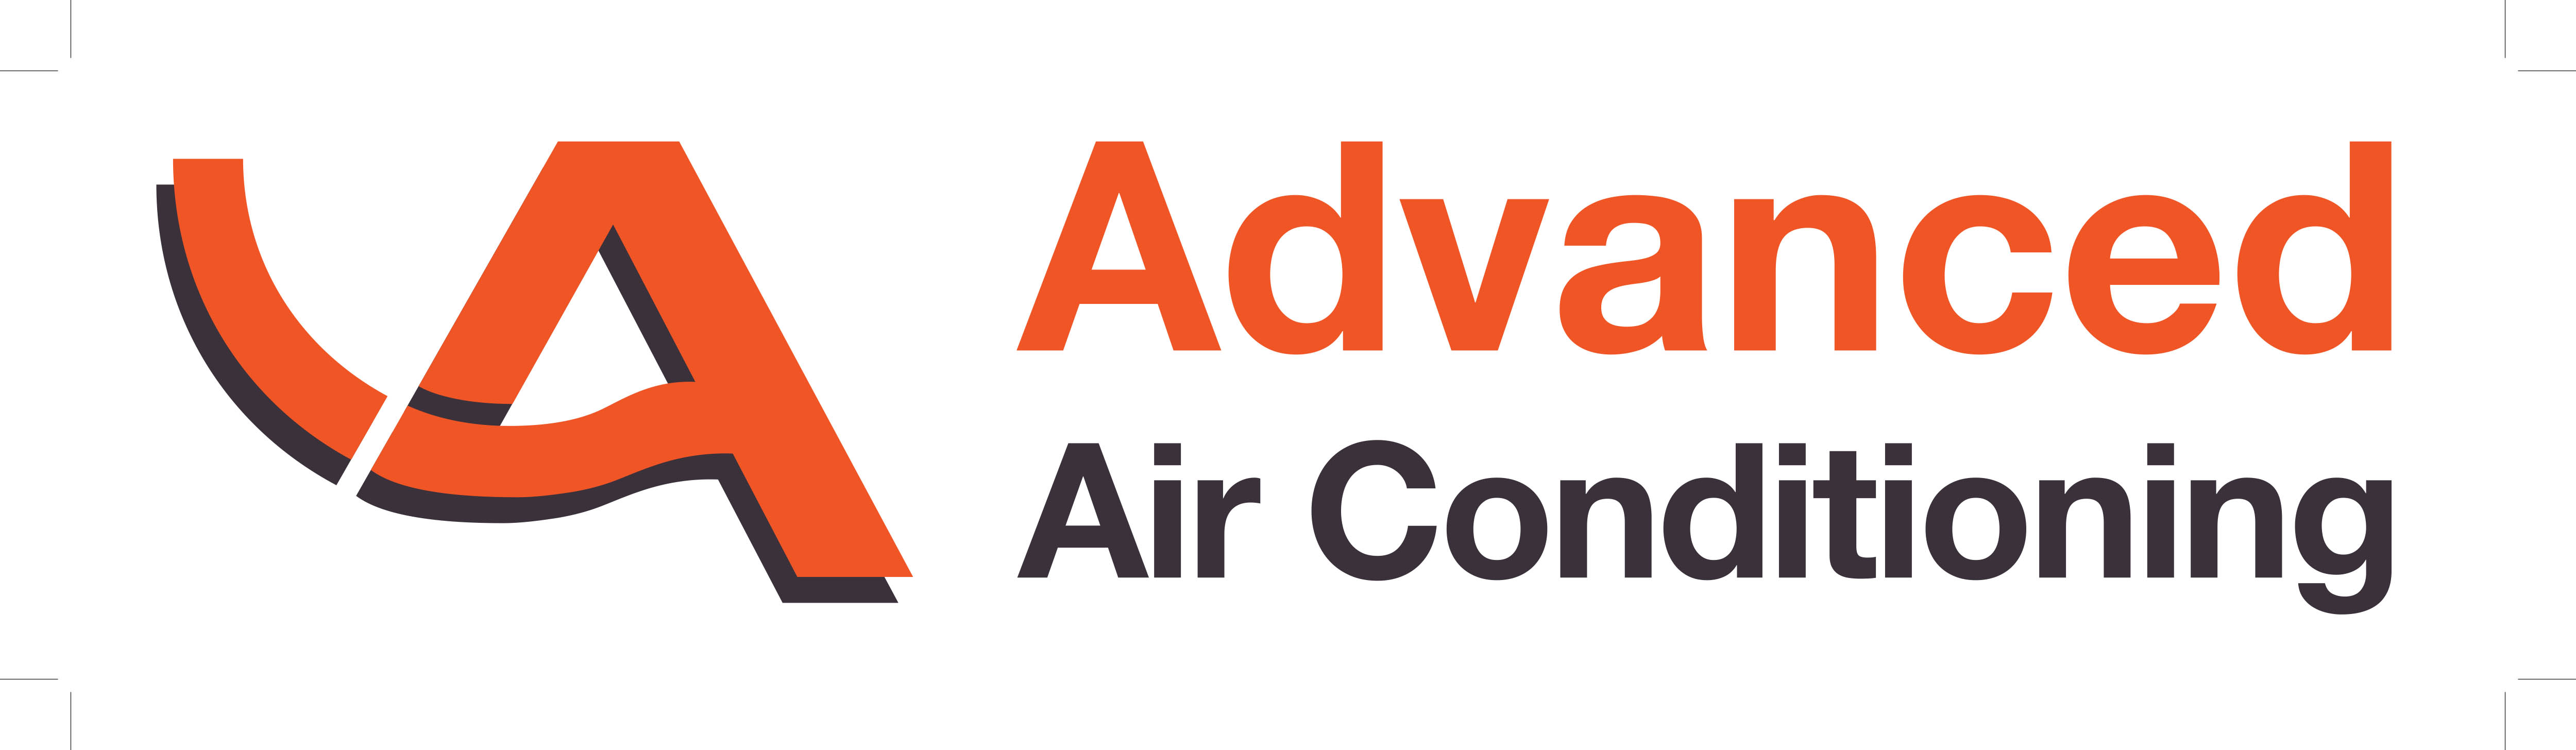 Advanced Air